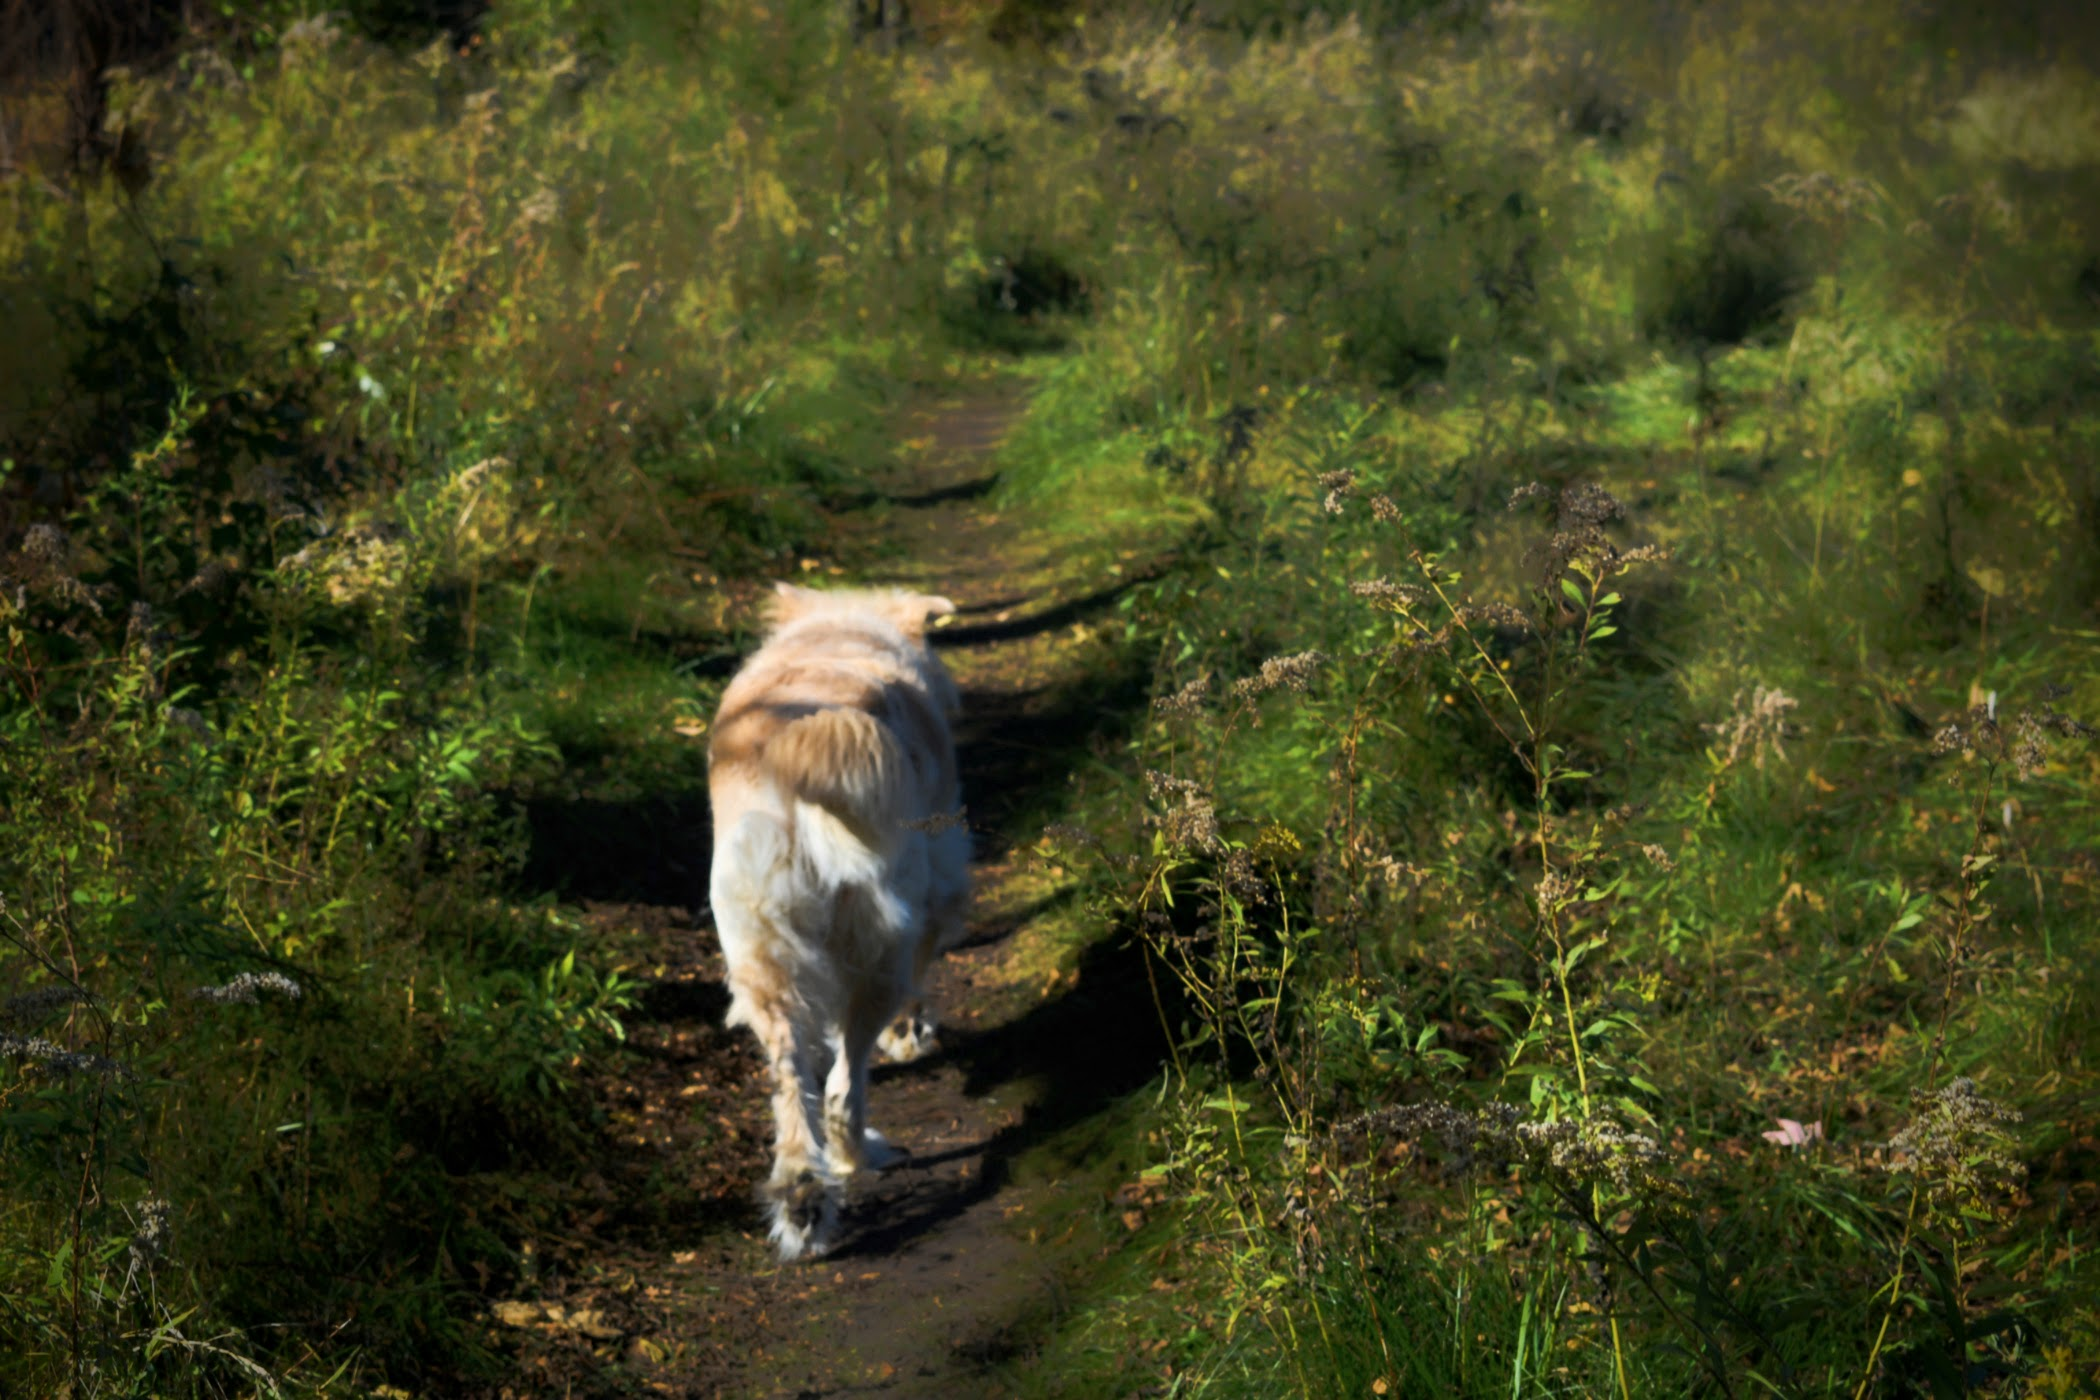 dog on a path - follow me - thetemenosjournal.com